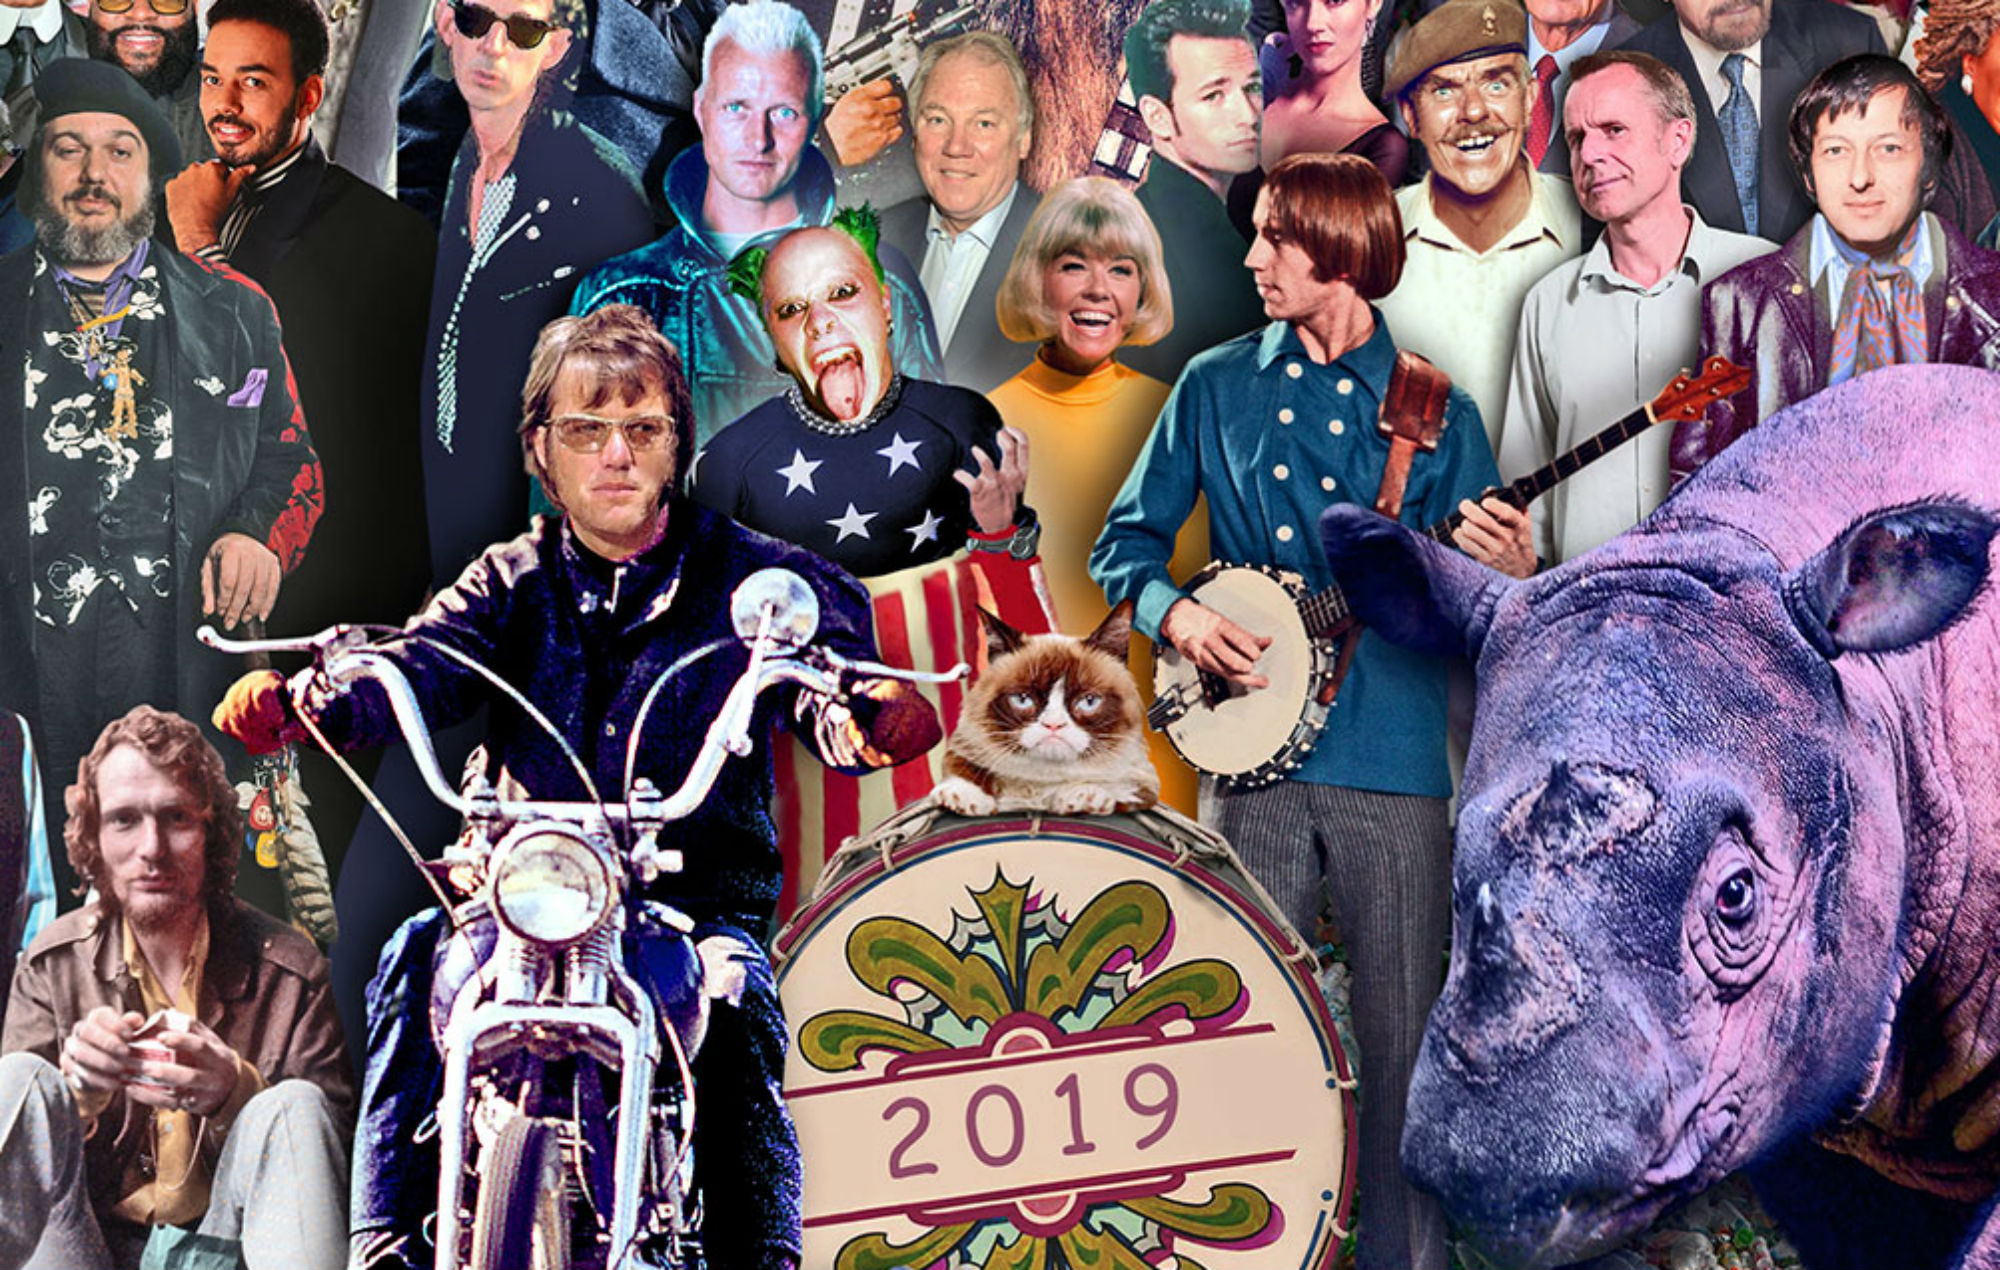 Keith Flint, Juice WRLD and more appear in 2019 'Sgt. Pepper's' cover tribute